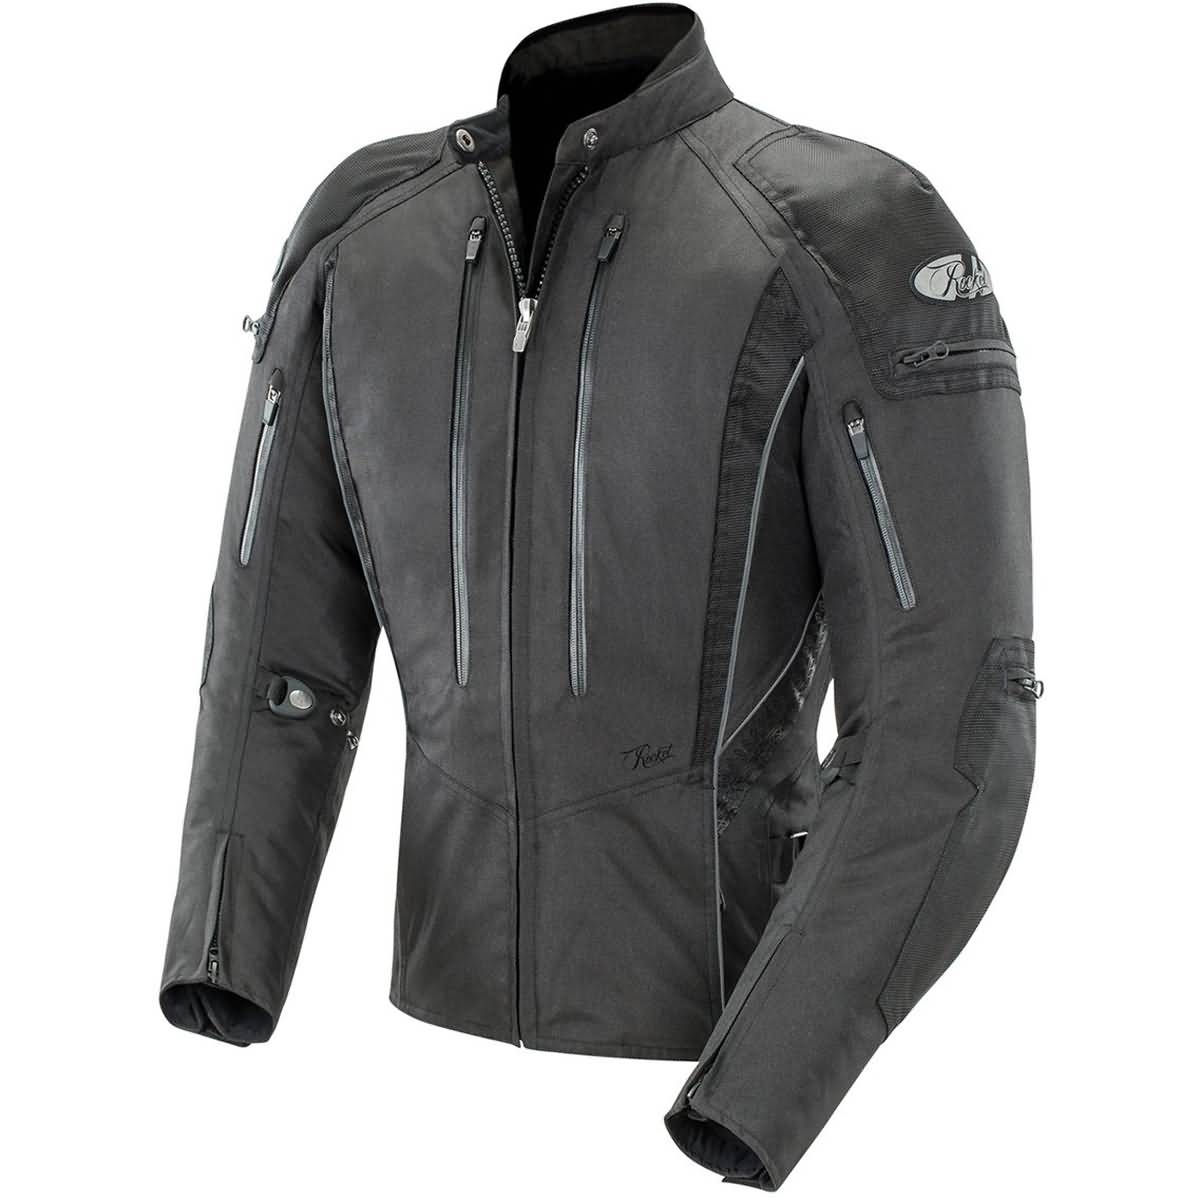 Joe Rocket Atomic 5.0 Women's Street Jackets-1741